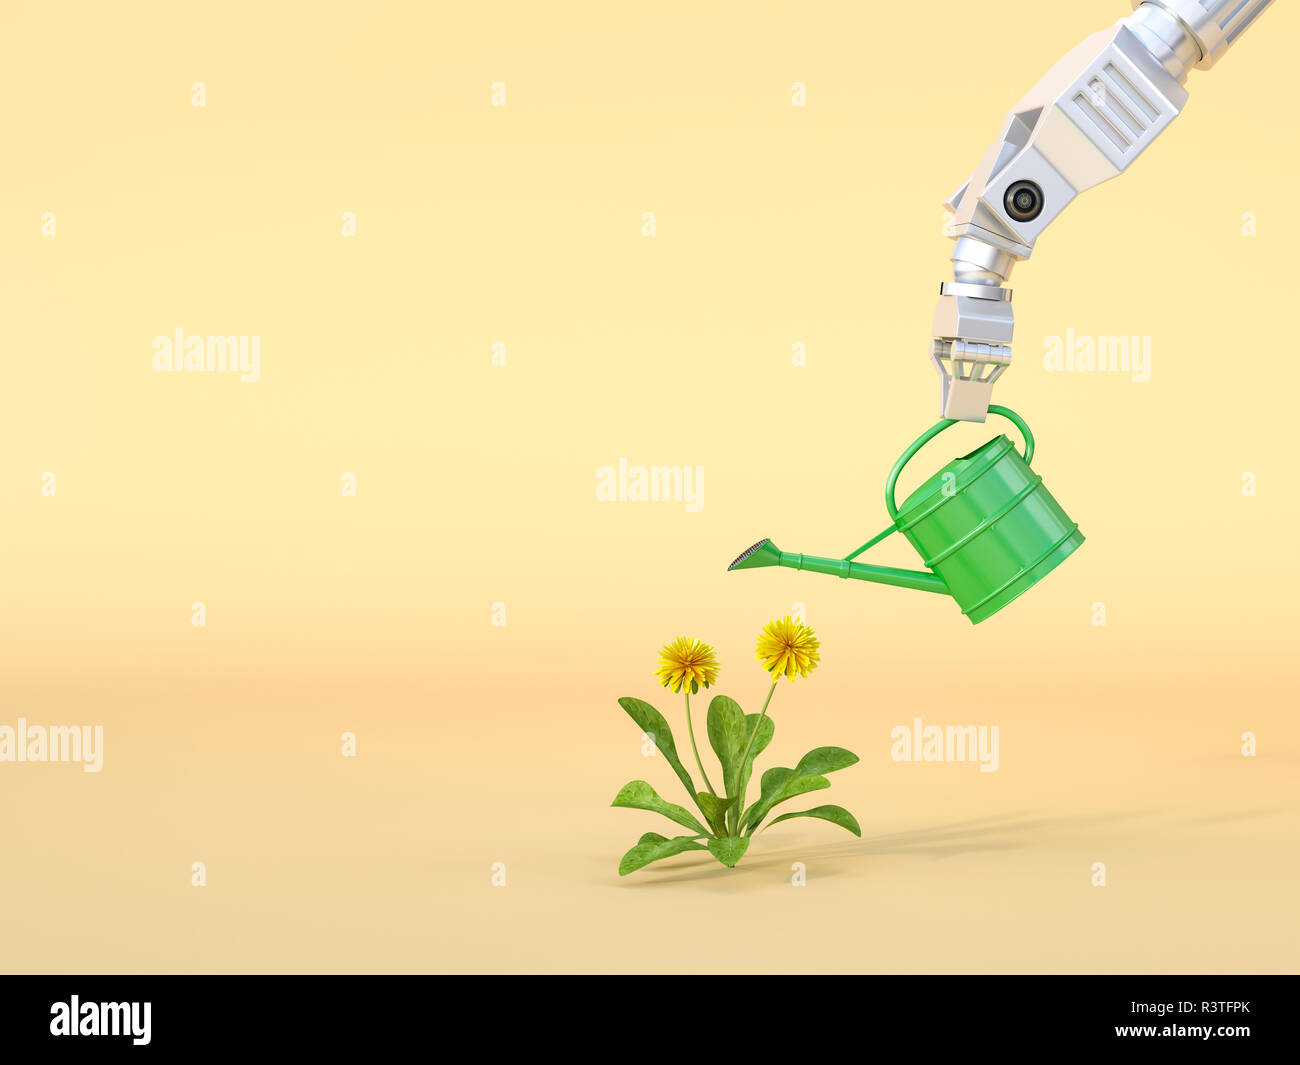 3D Rendering, Robot claw watering flowers - Stock Image